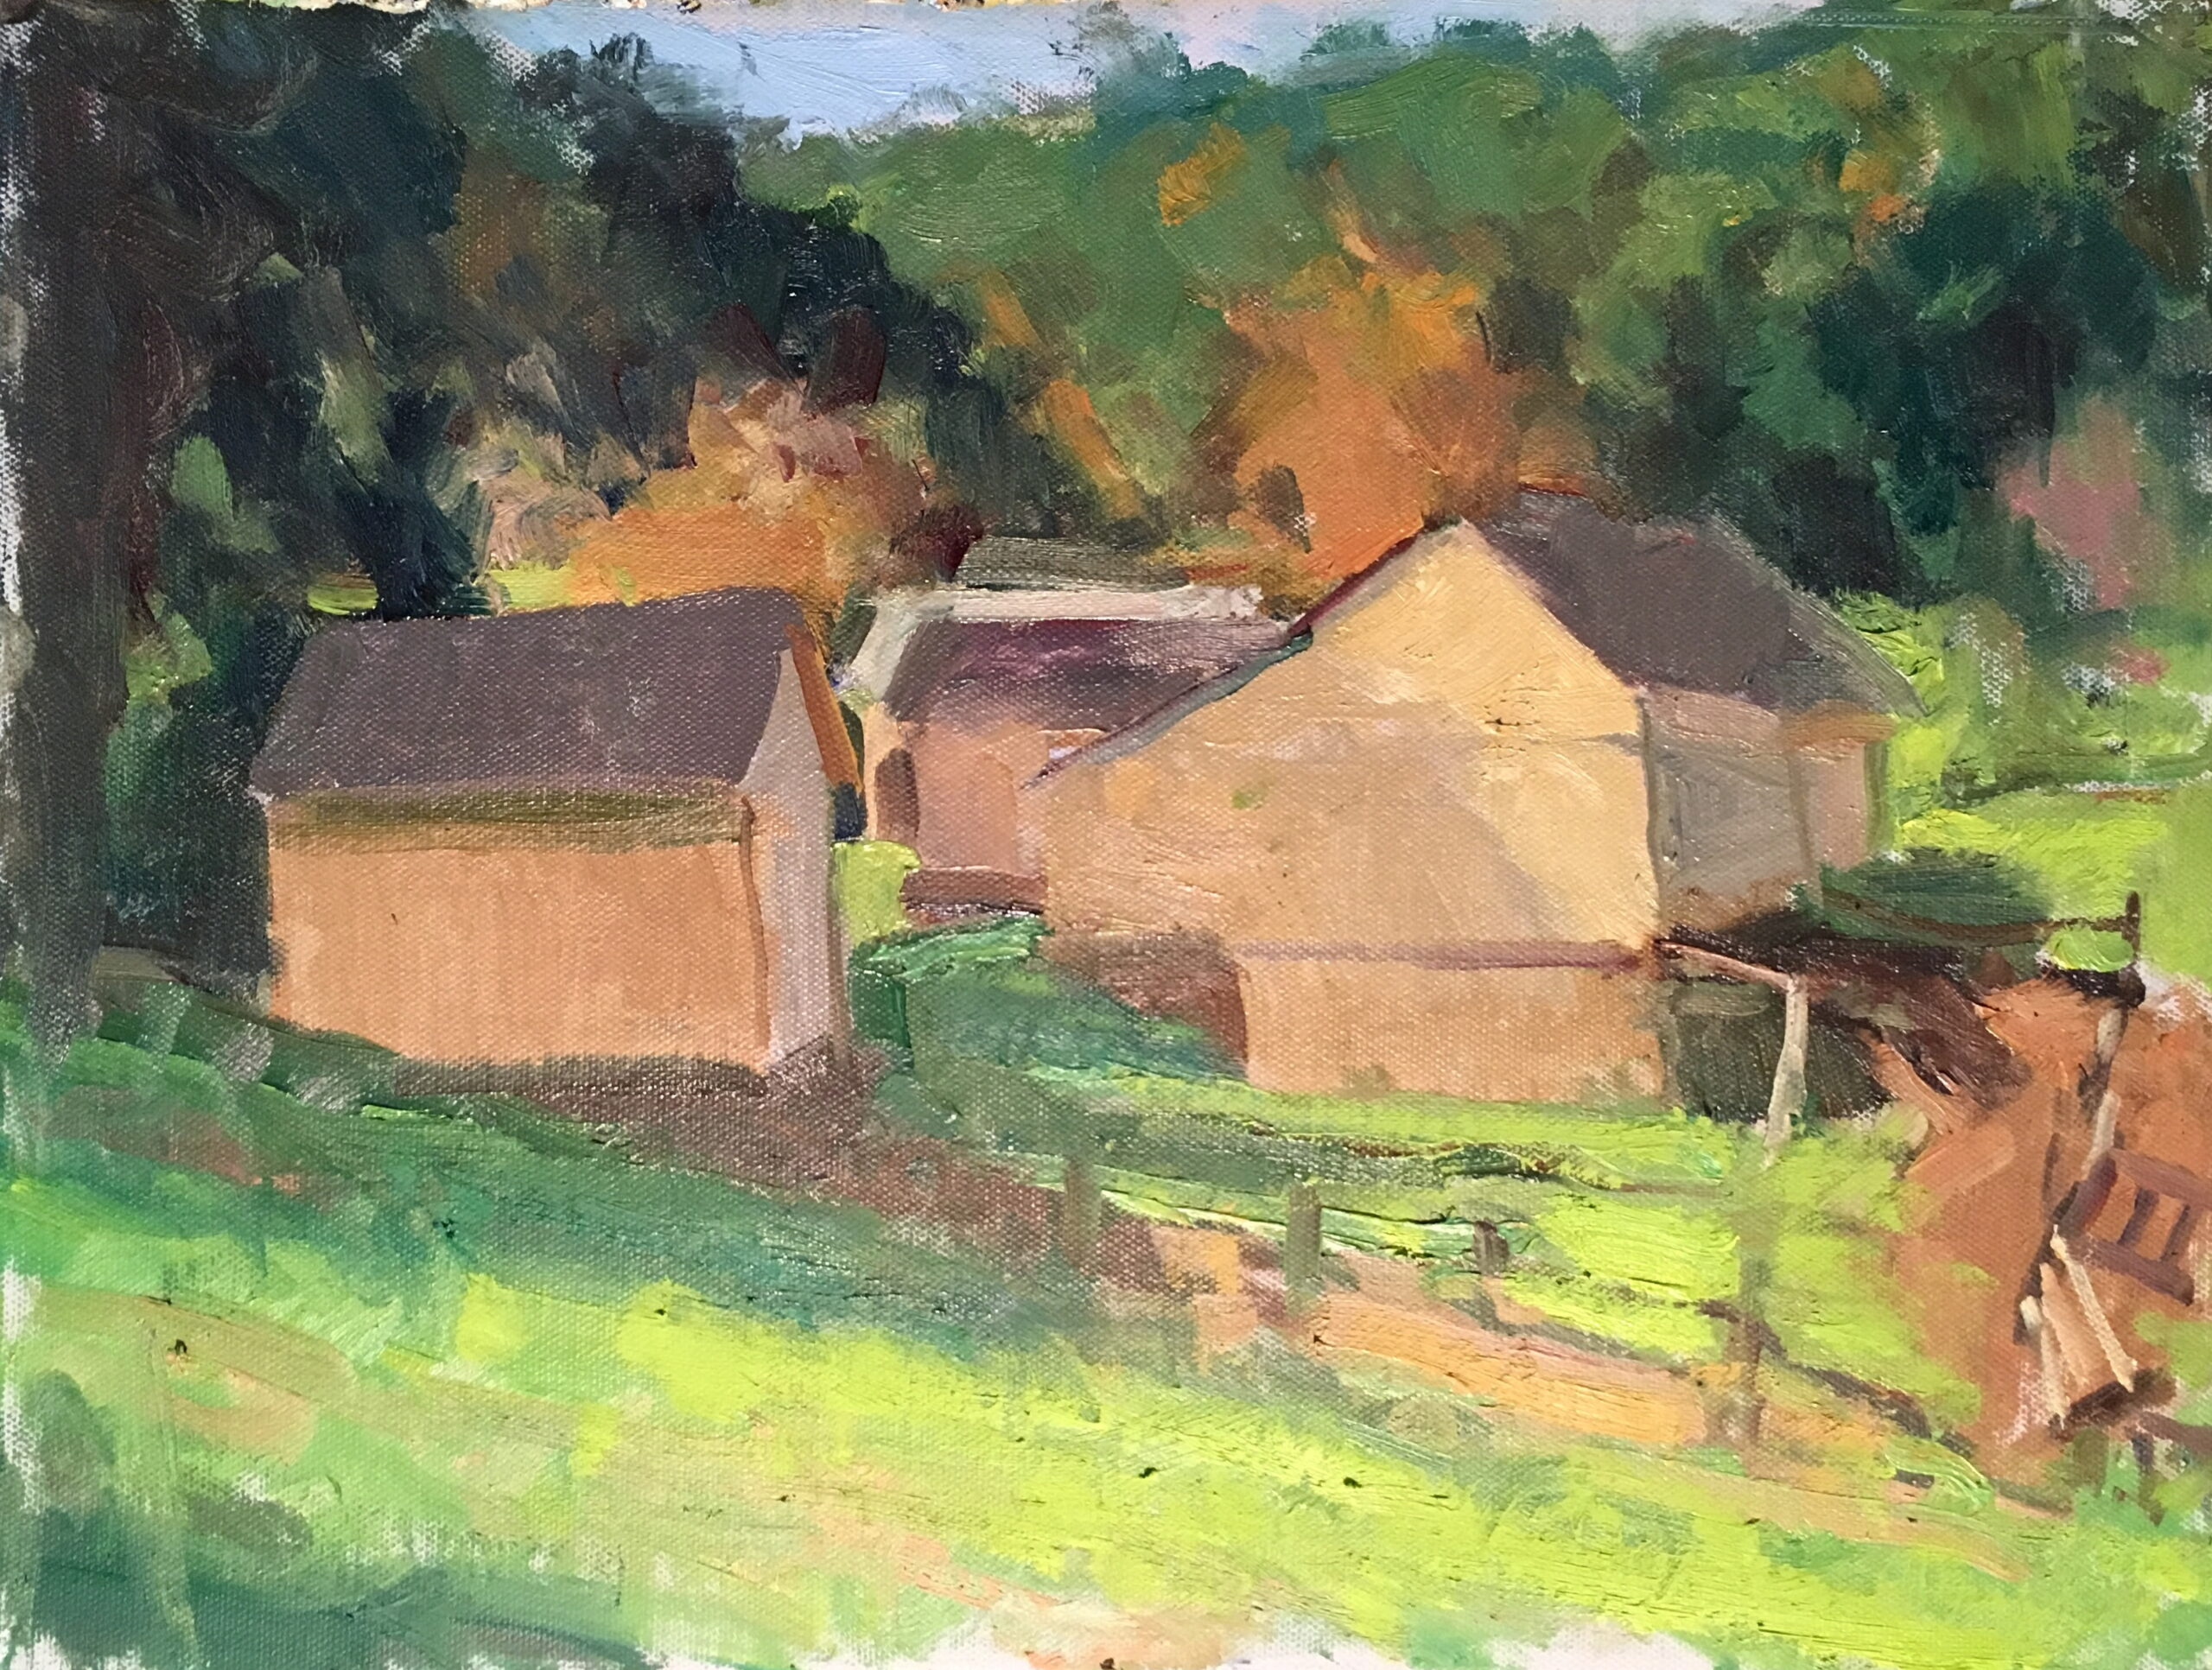 Barns in October, Oil on Canvas on Panel, 12 x 16 Inches, by Susan Grisell, $325